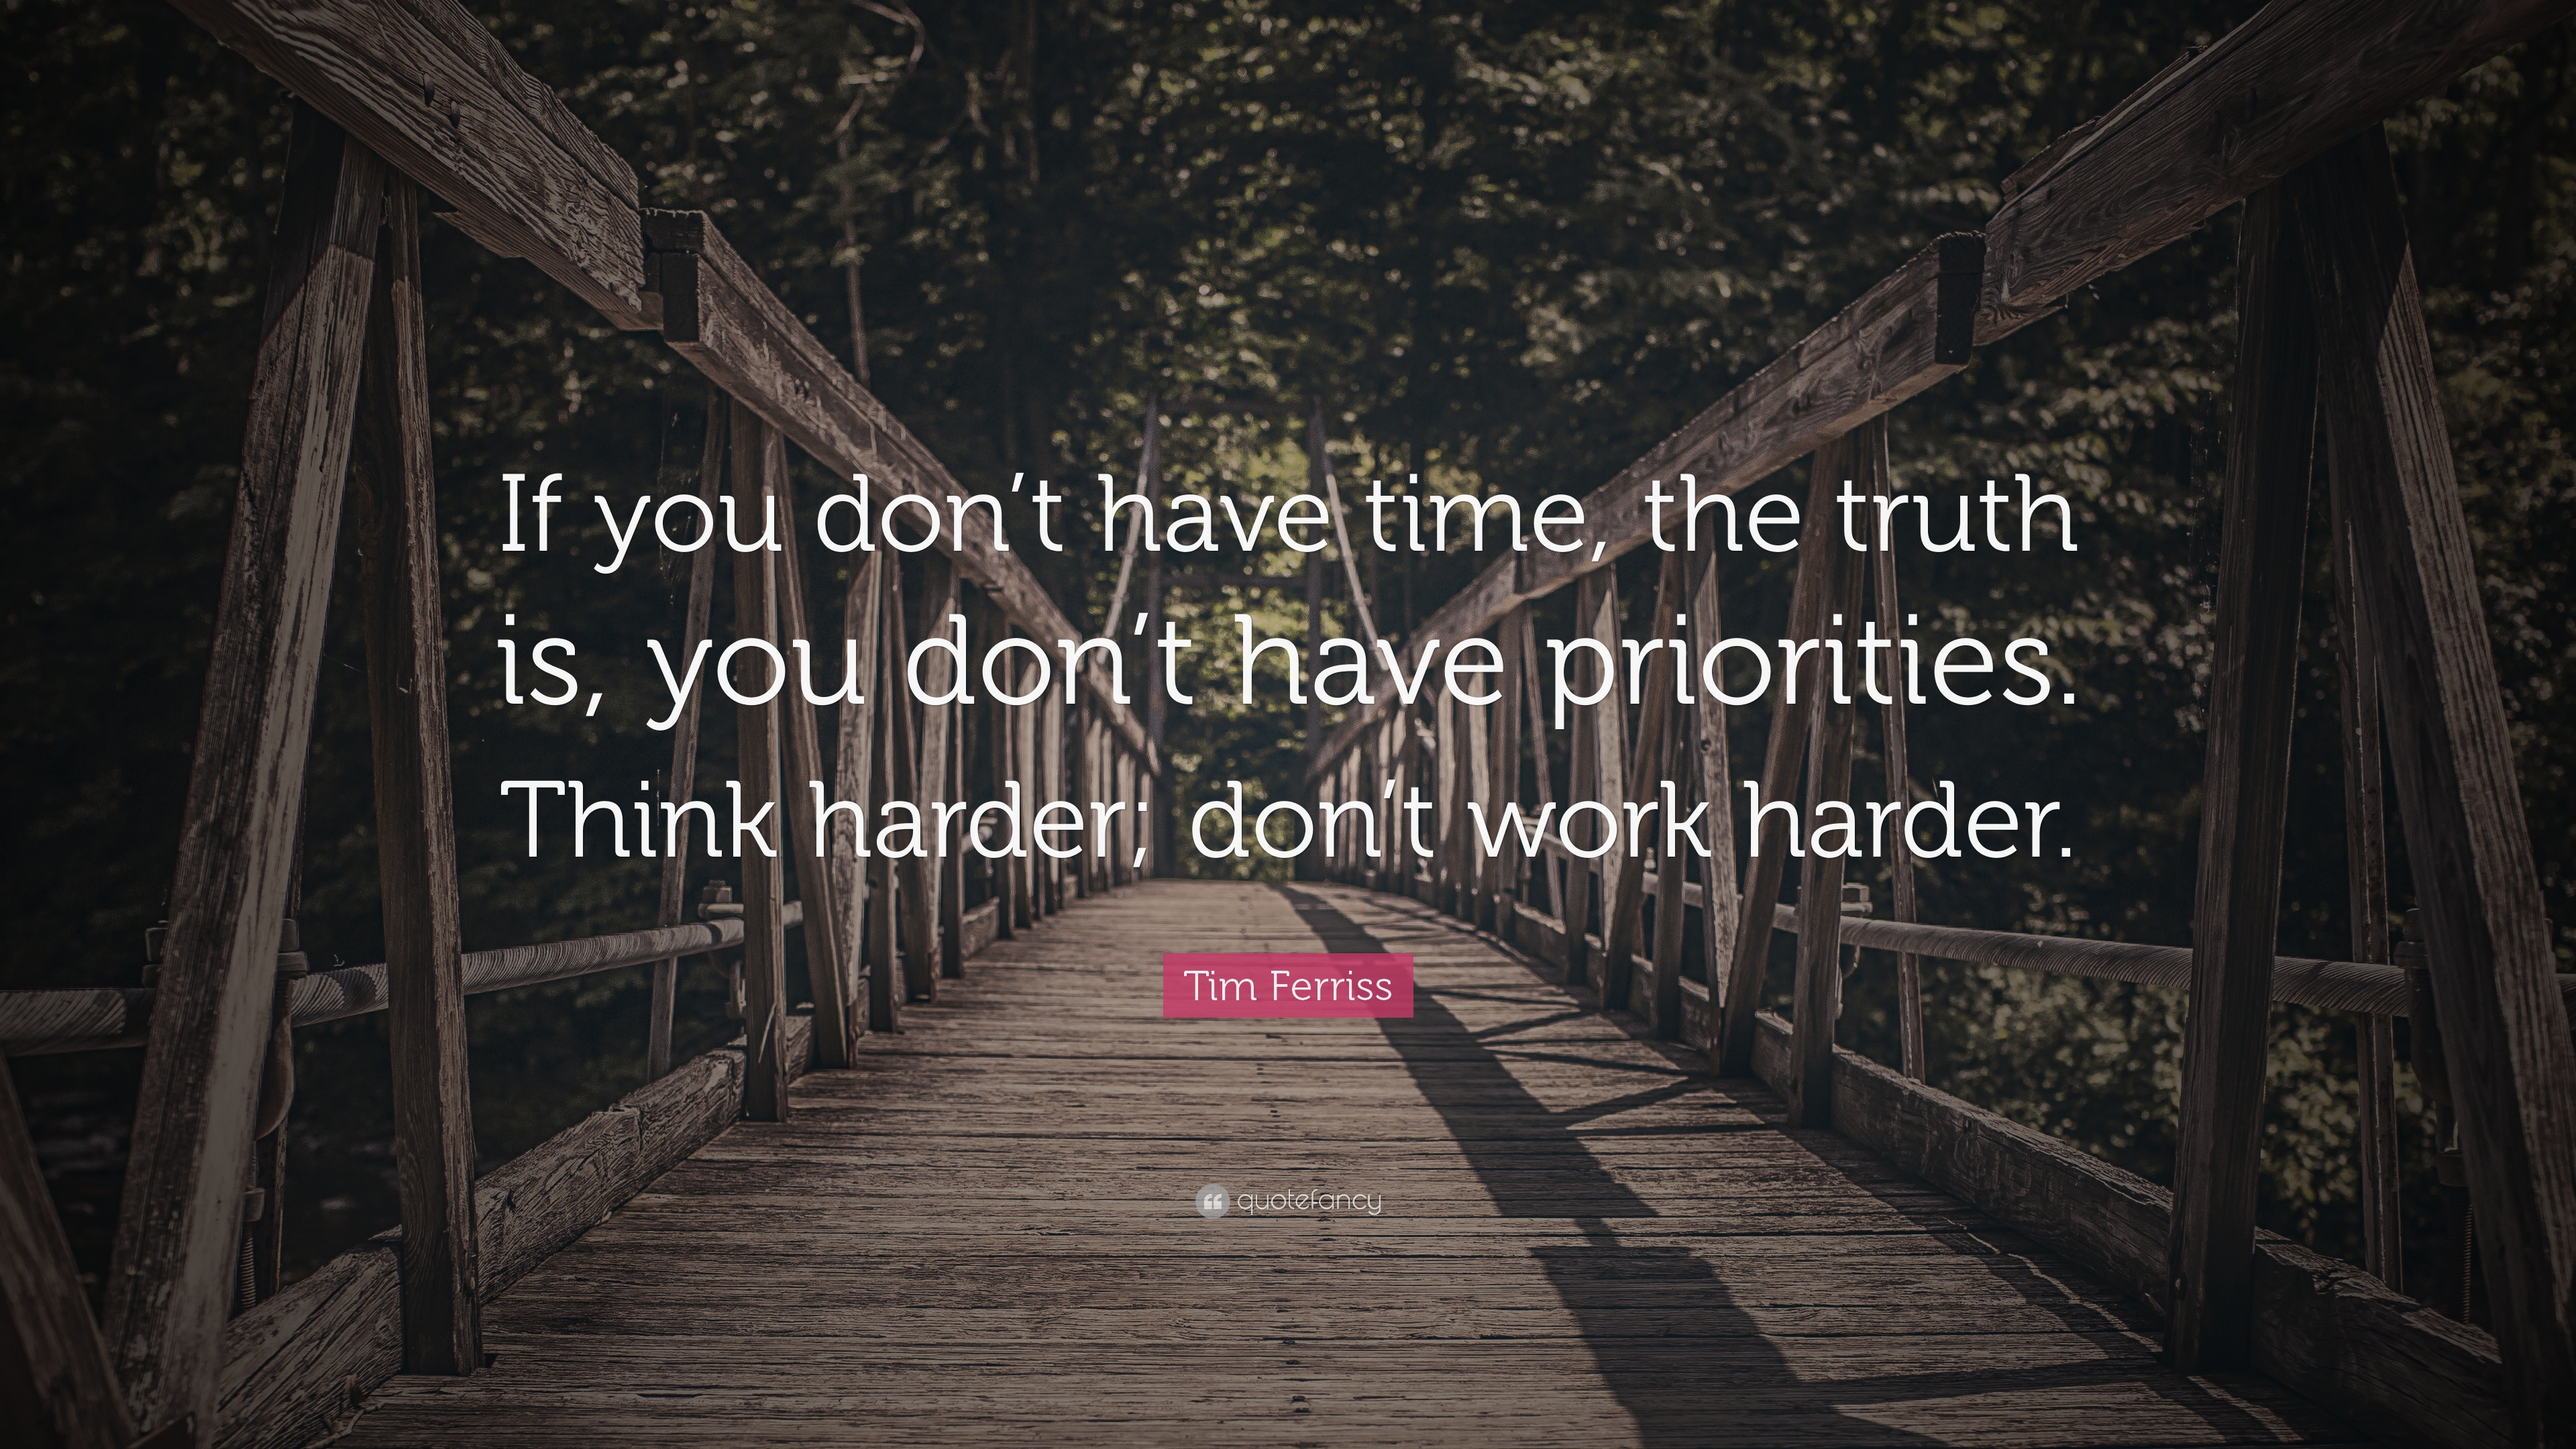 Tim Ferriss Quote: U201cIf You Donu0027t Have Time, The Truth Is